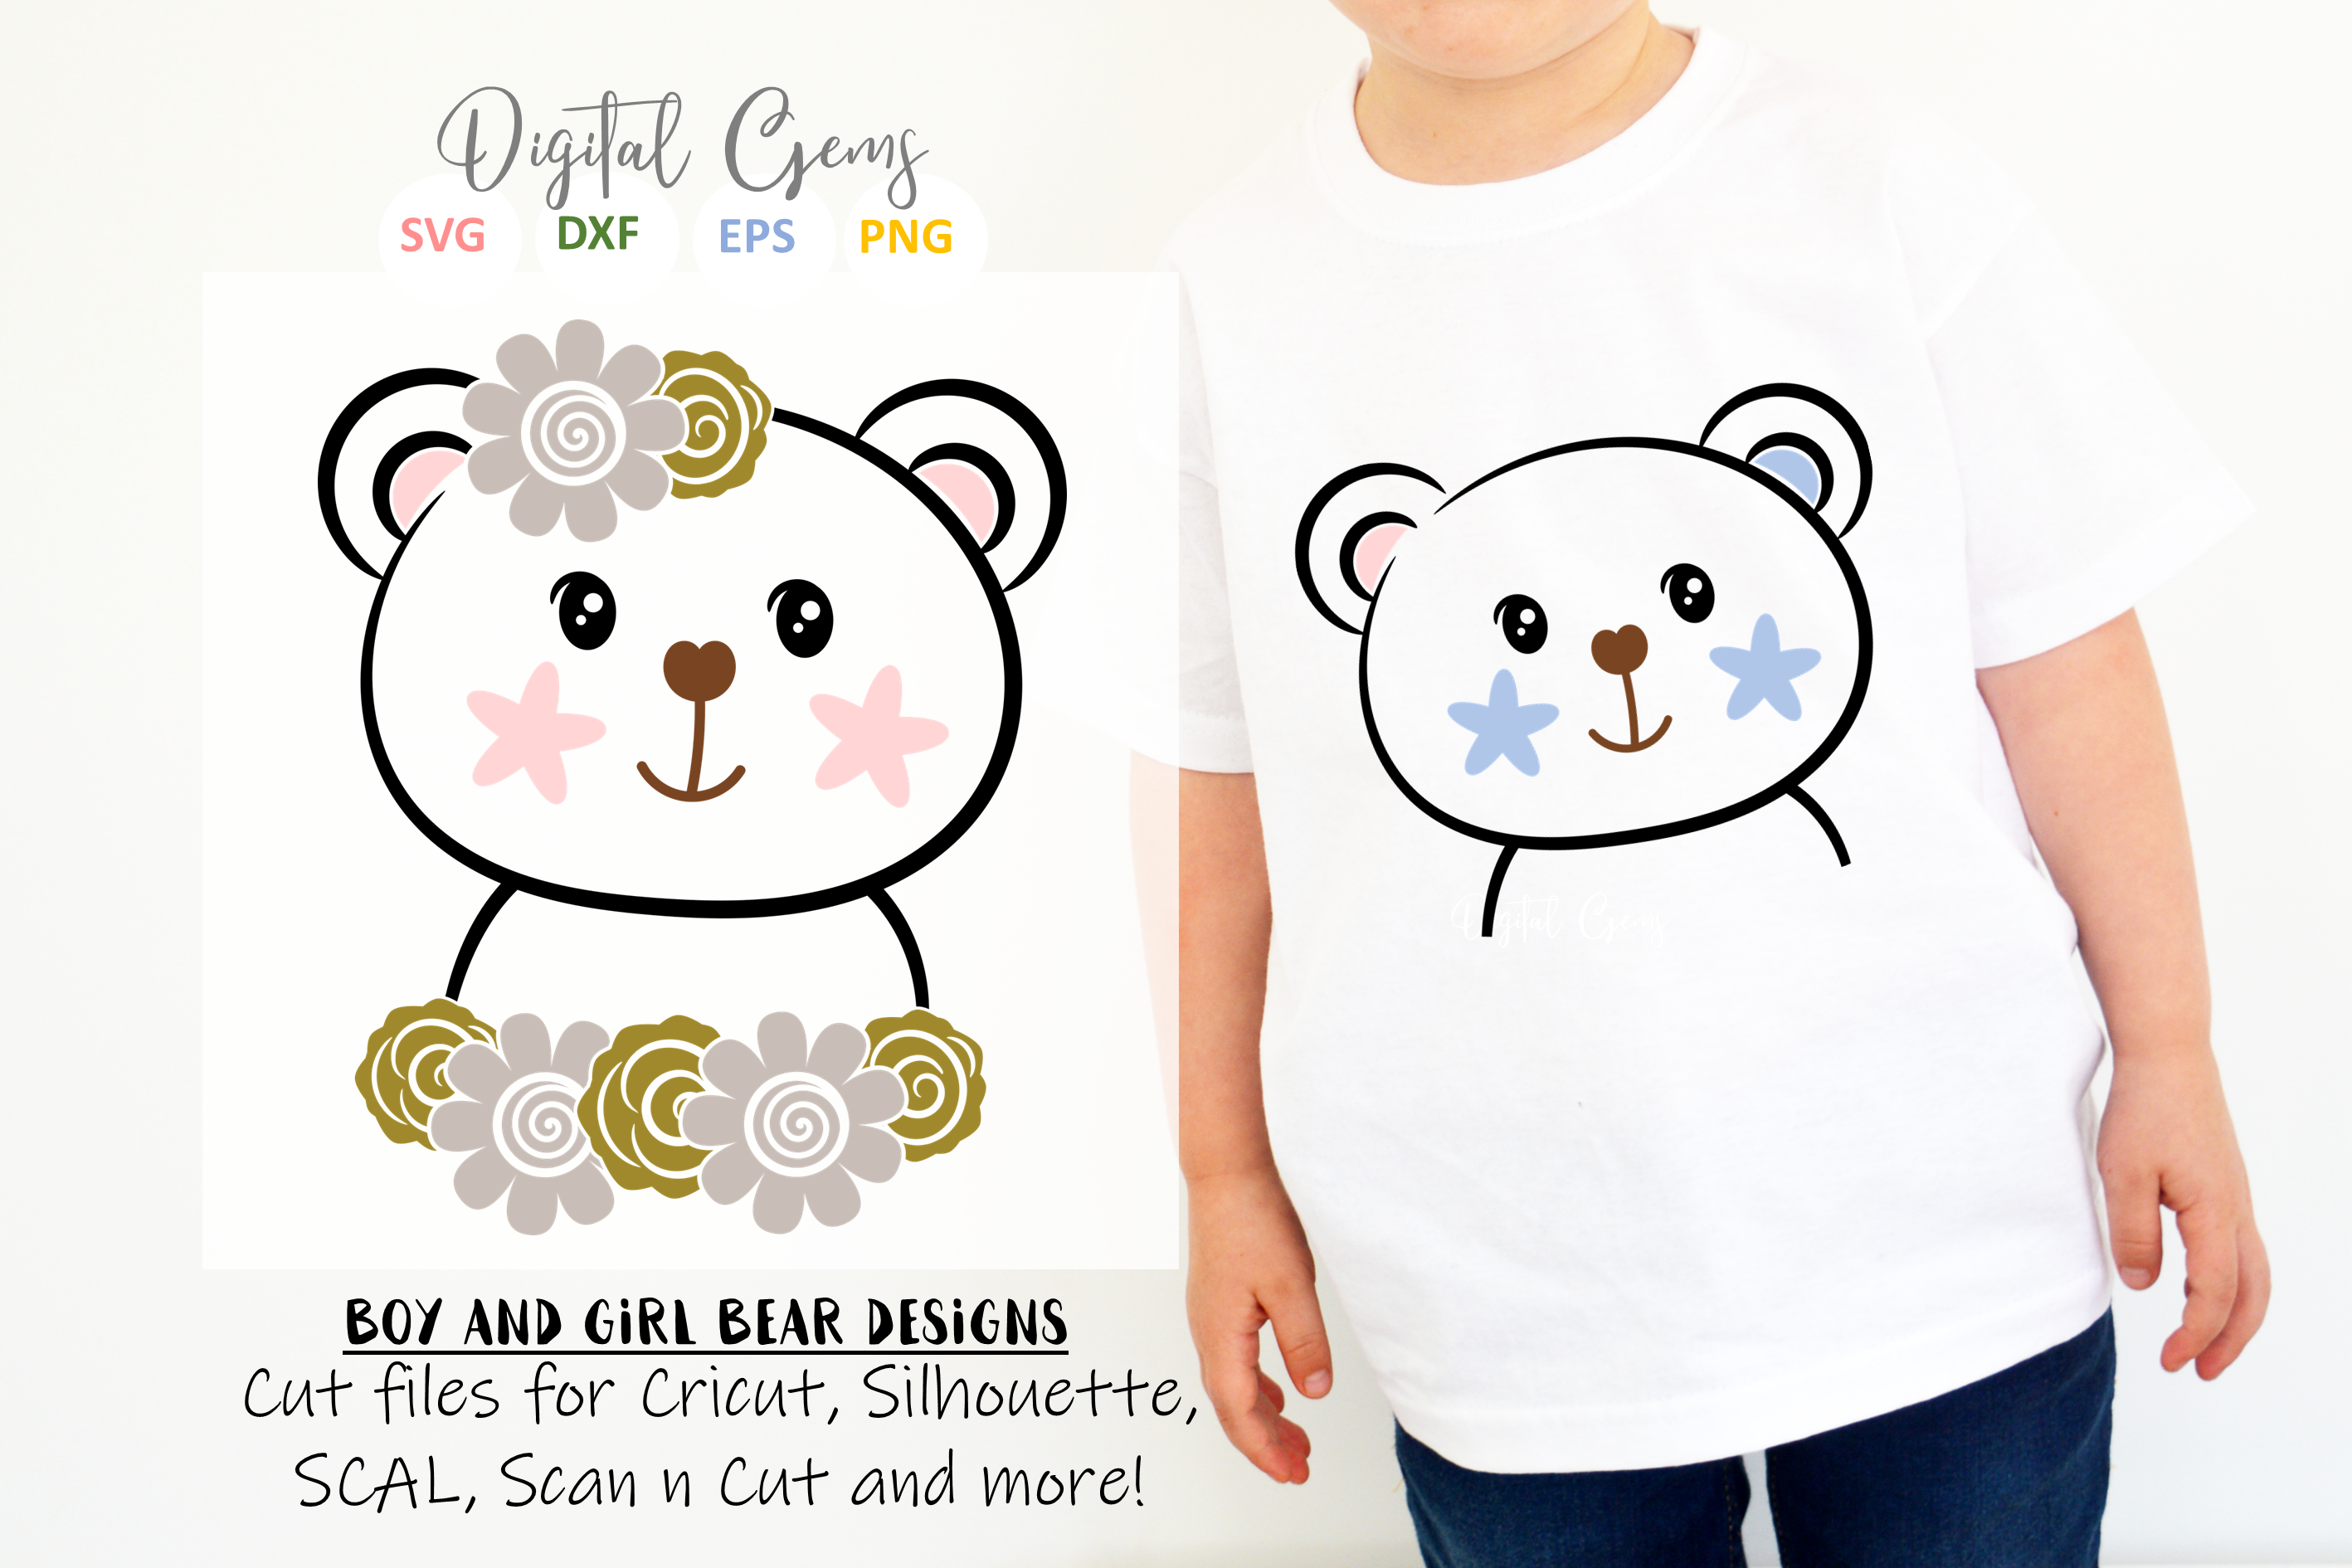 Bear designs. SVG / PNG / EPS / DXF Files example image 1